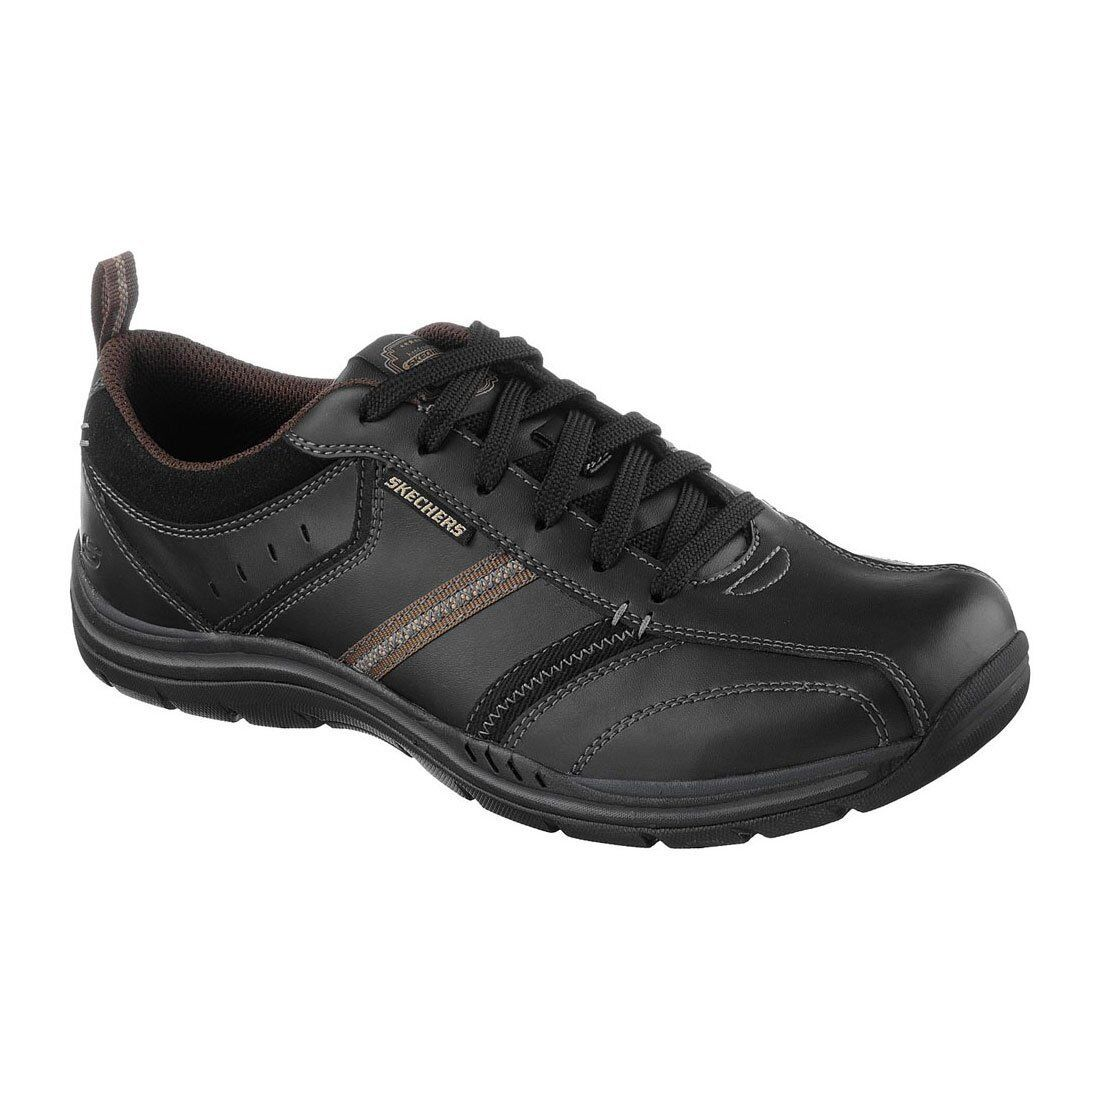 Devention Style Us Men Leather Skechers Shoes 64378 Expected For Nm8wvOy0n